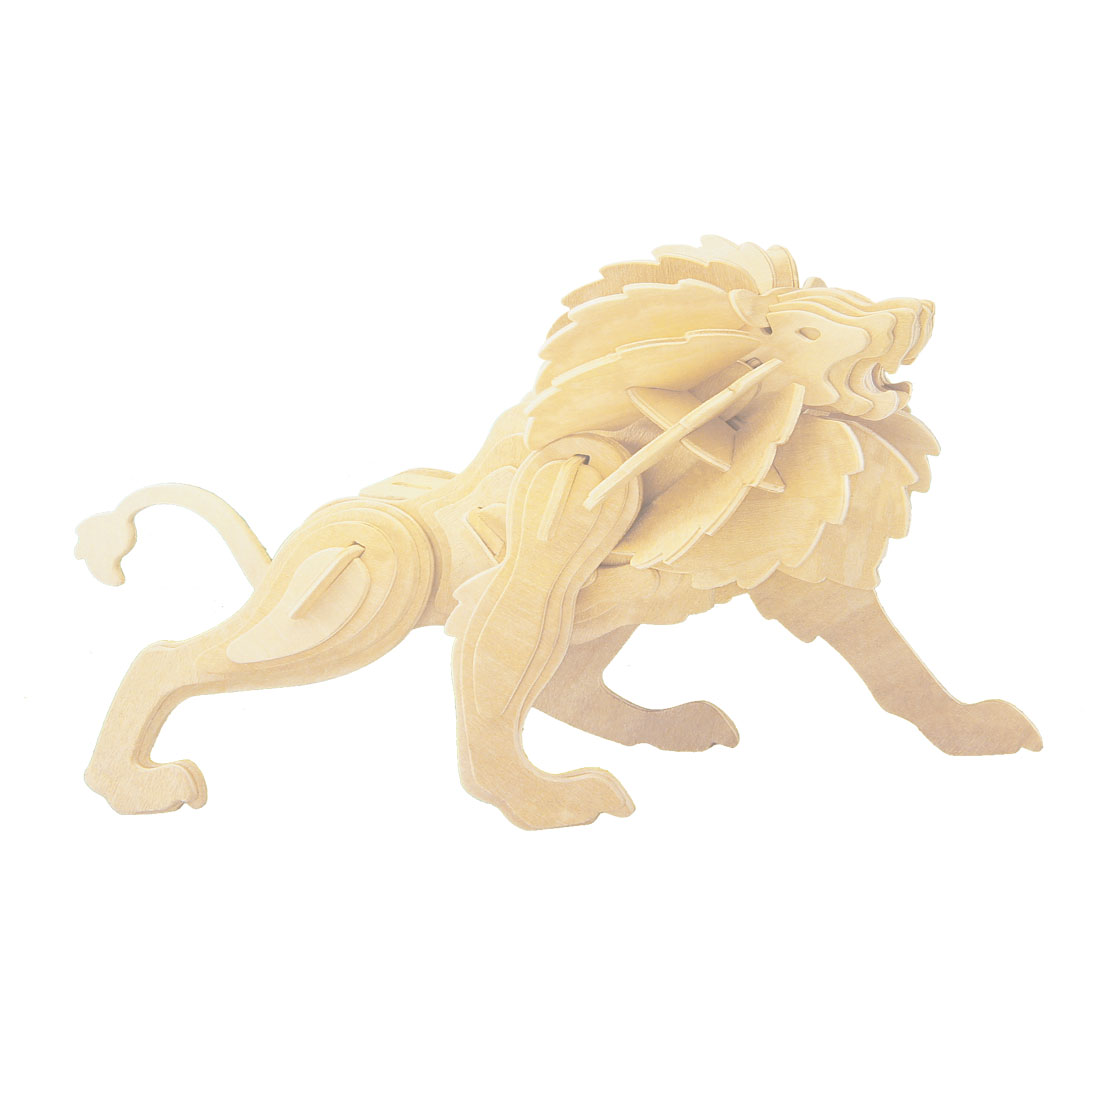 Children 3D Puzzle Little Lion Model Wooden Construction Kit Toy